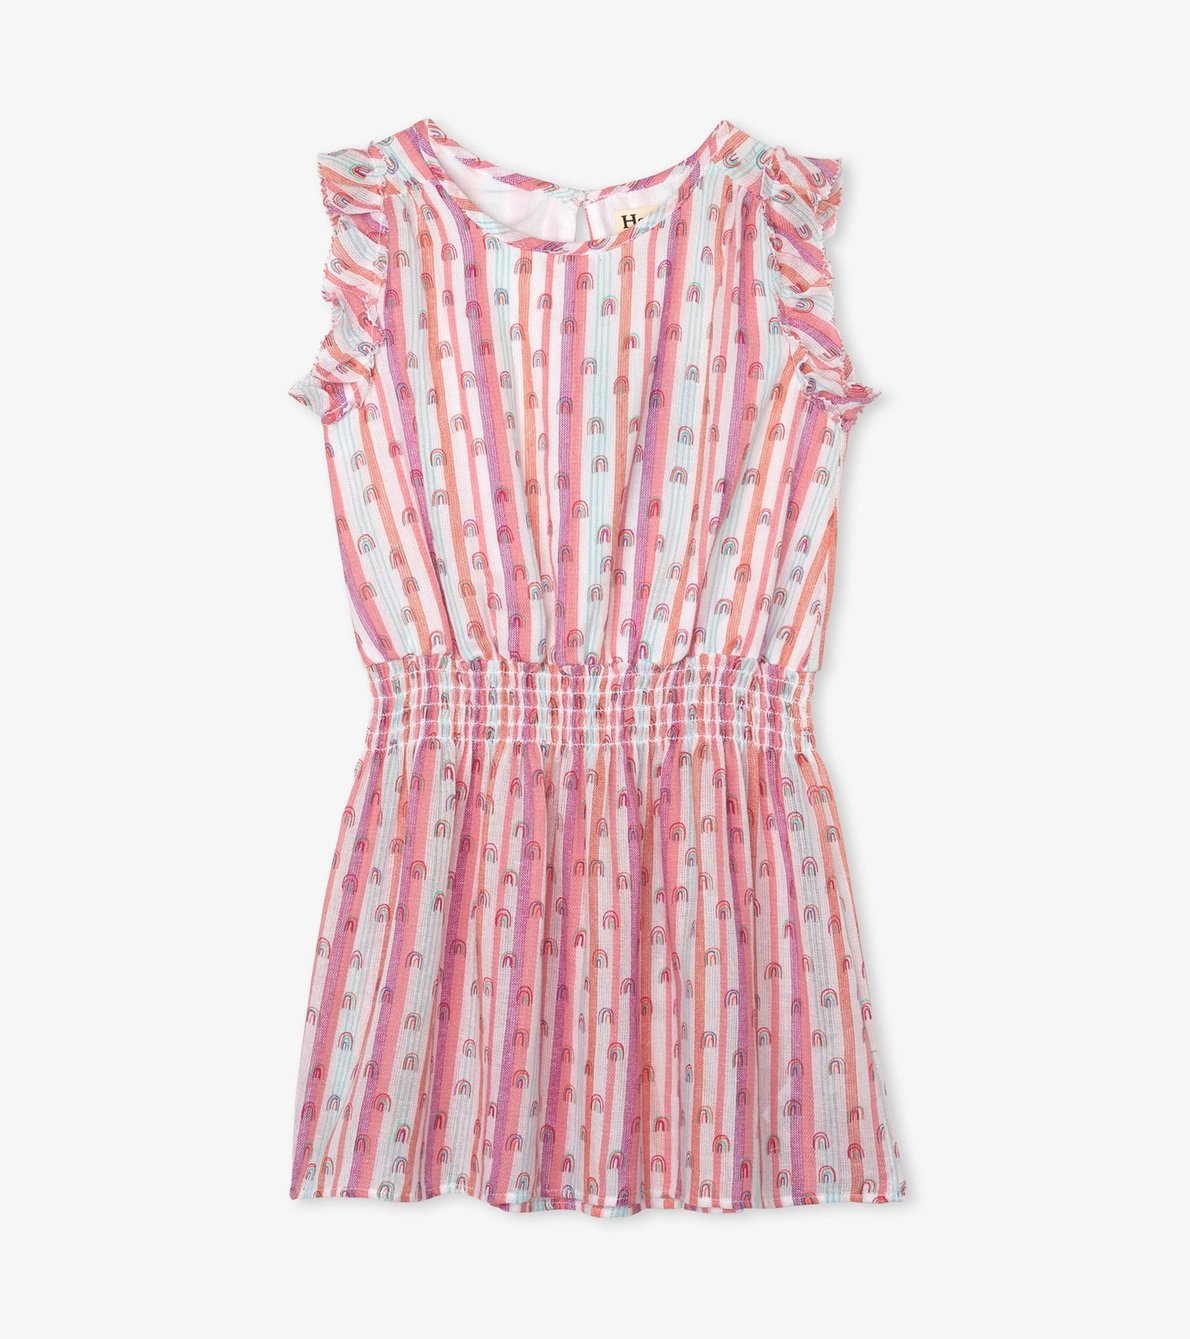 View larger image of Candy Stripes Rainbows Play Dress